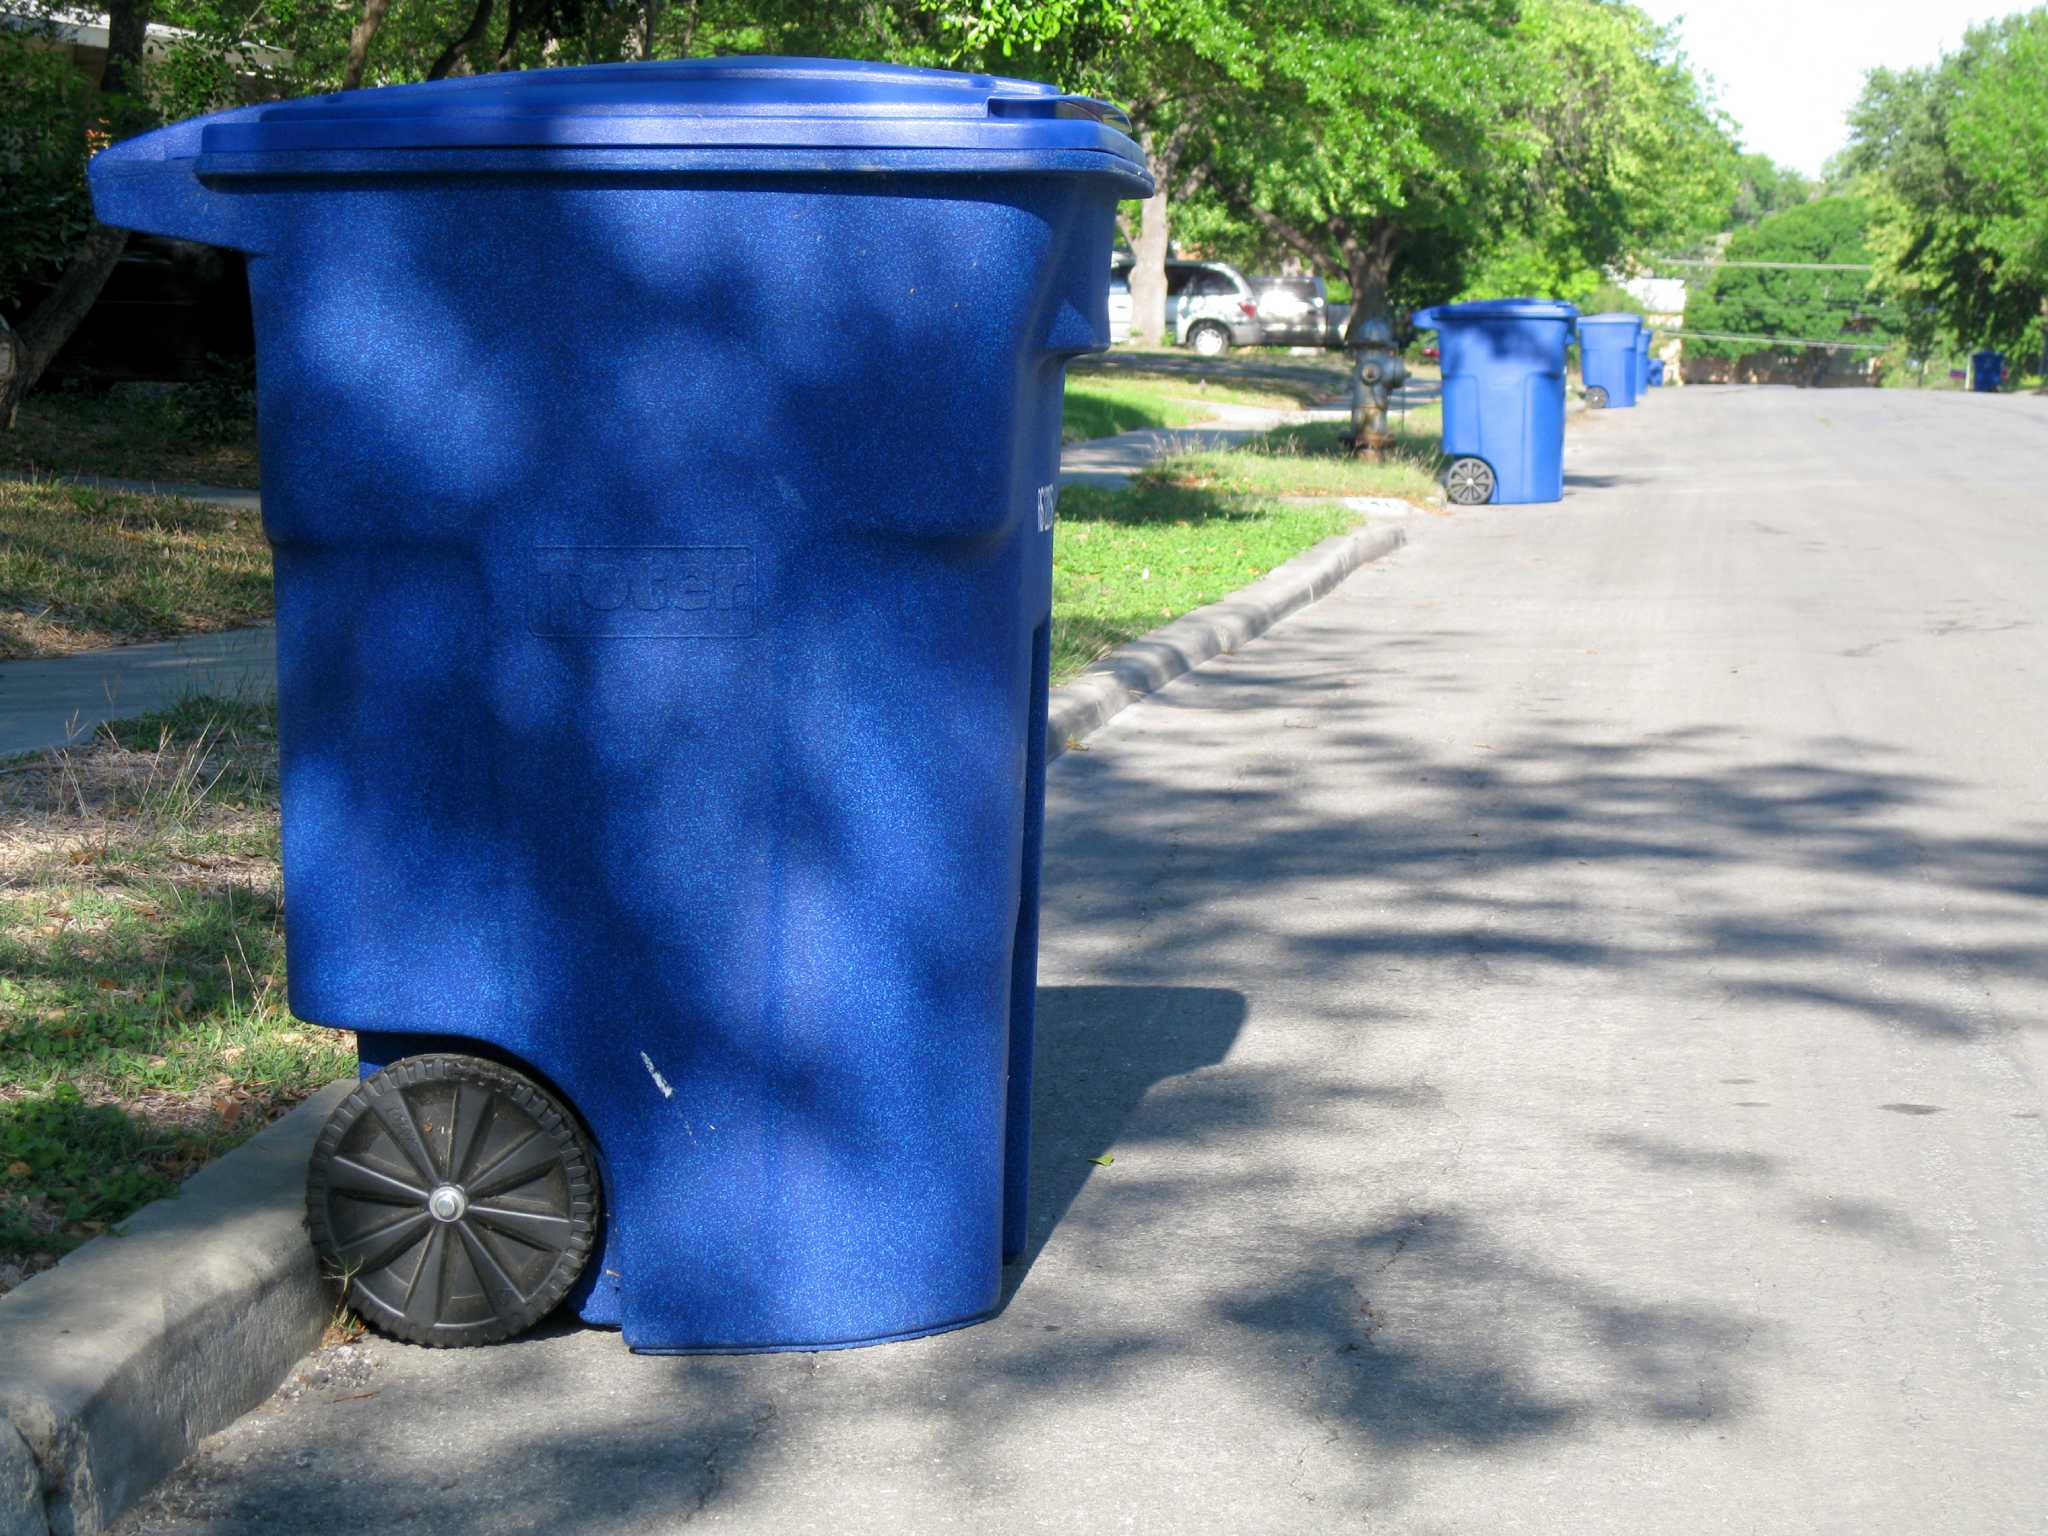 trash fine is all about fairness to taxpayers - san antonio express-news